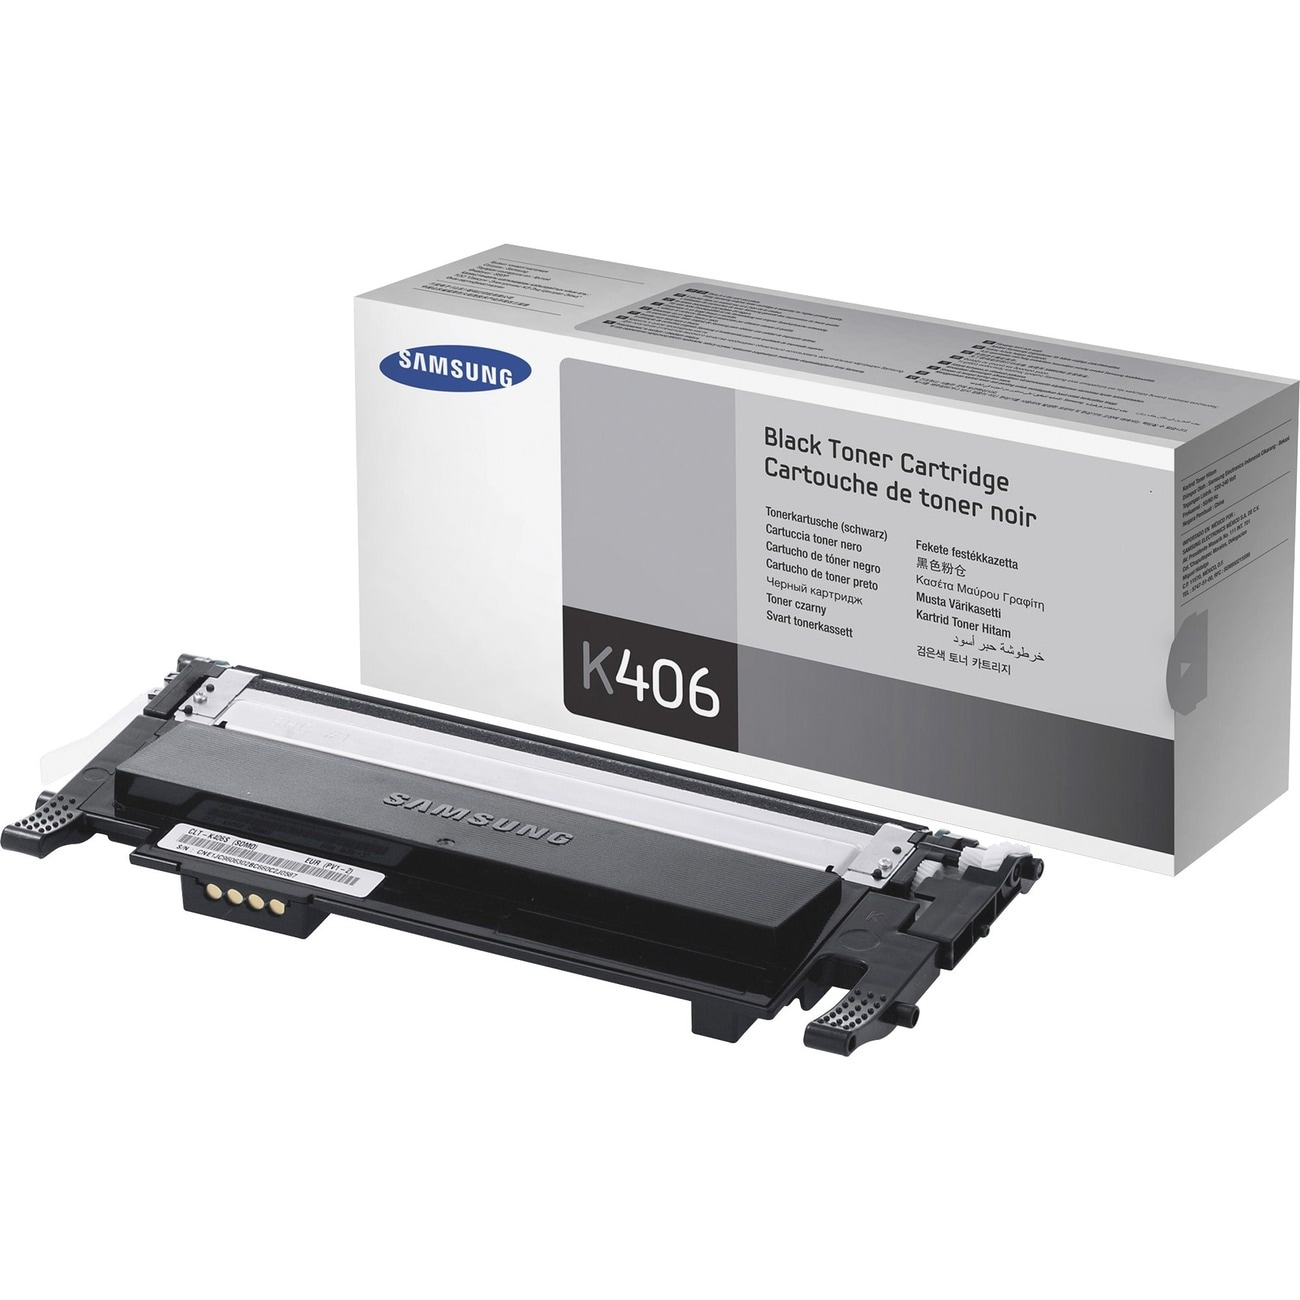 Samsung CLT-K406S Toner Cartridge - Black - Thumbnail 0